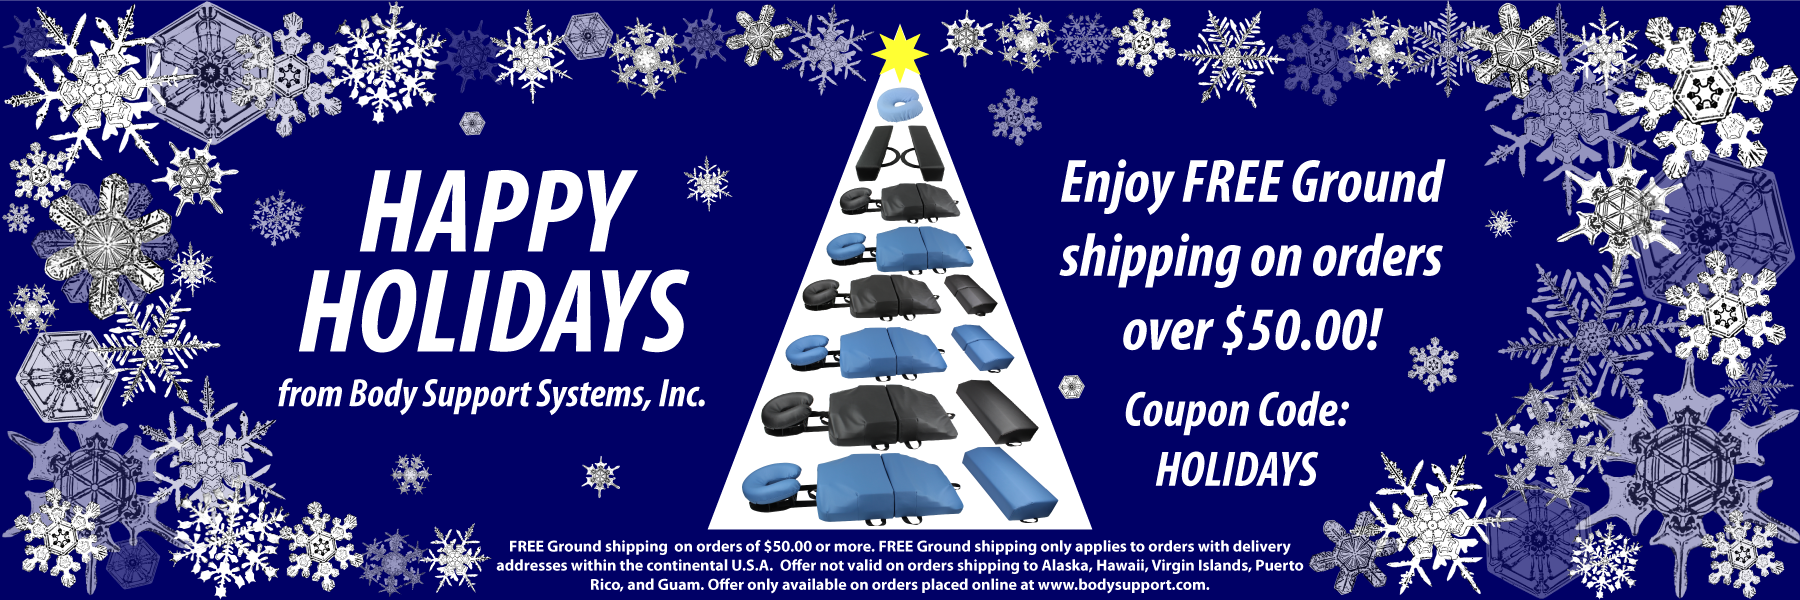 Happy Holidays from Body Support Systems, Inc. Enjoy FREE Ground shipping on orders over $50.00! Coupon Code: HOLIDAYS